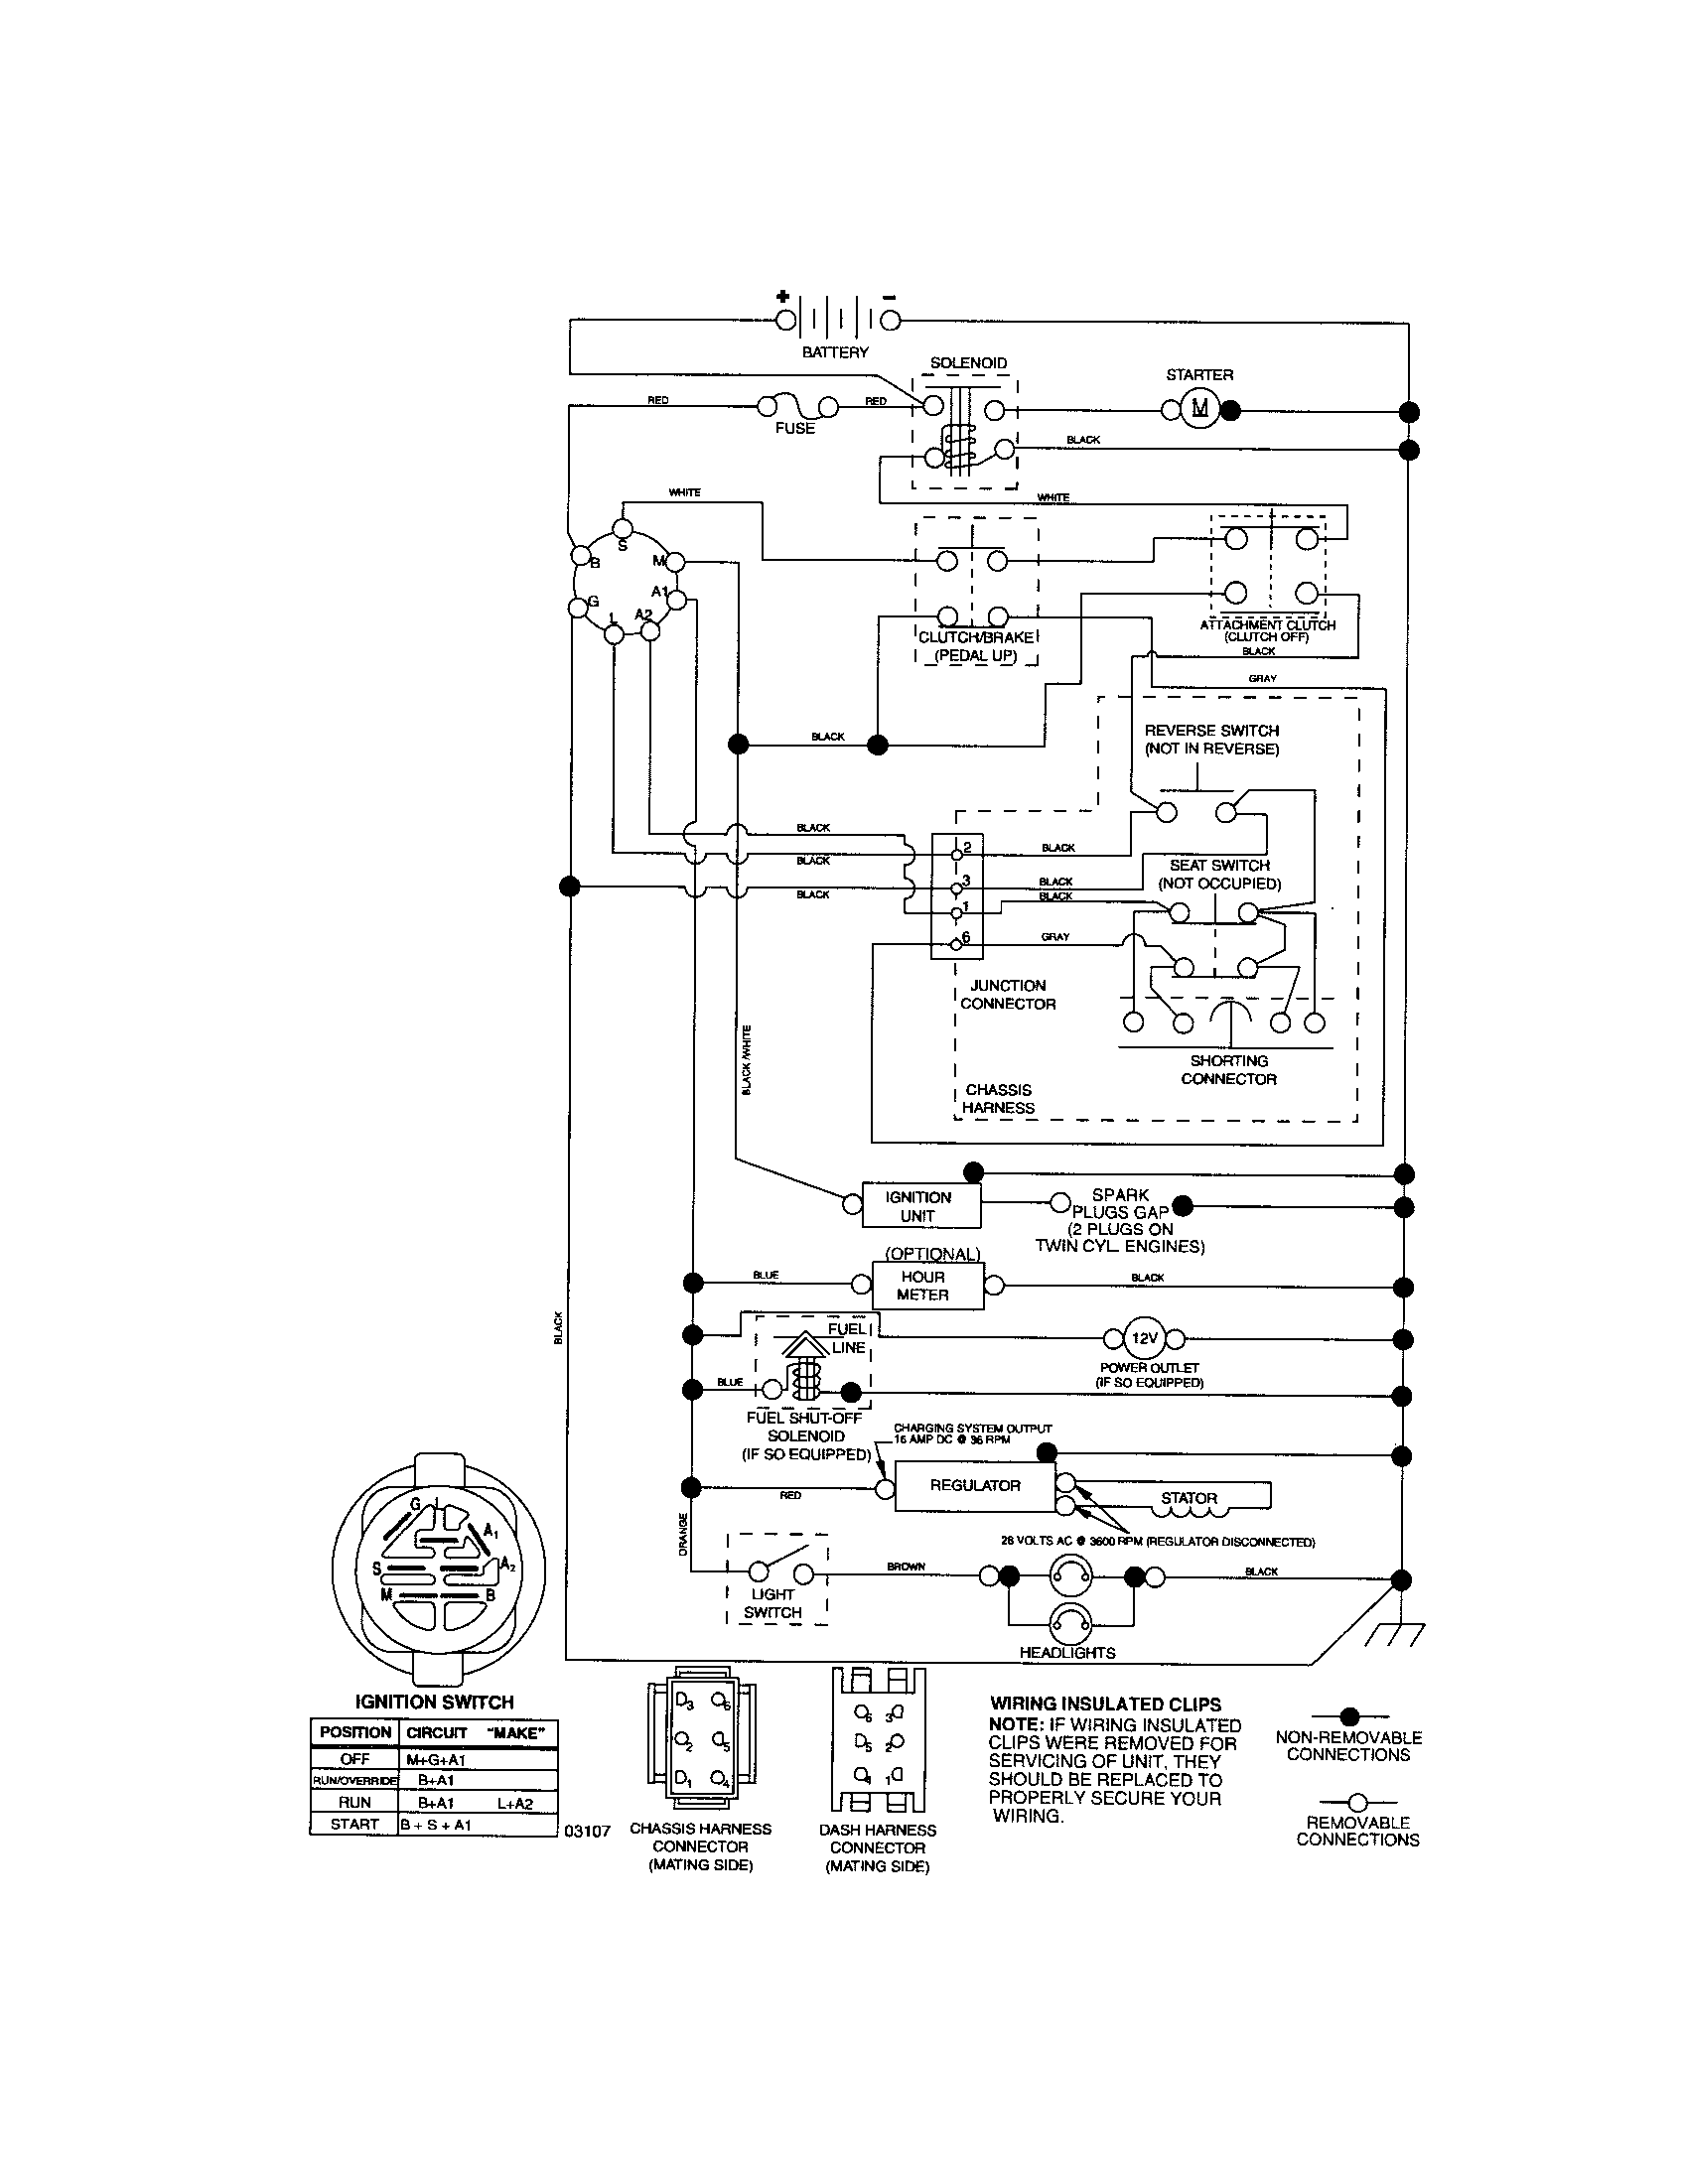 6af5f1447fd13c8443376822ddc1e105 craftsman riding mower electrical diagram wiring diagram Universal Wiring Harness Diagram at alyssarenee.co